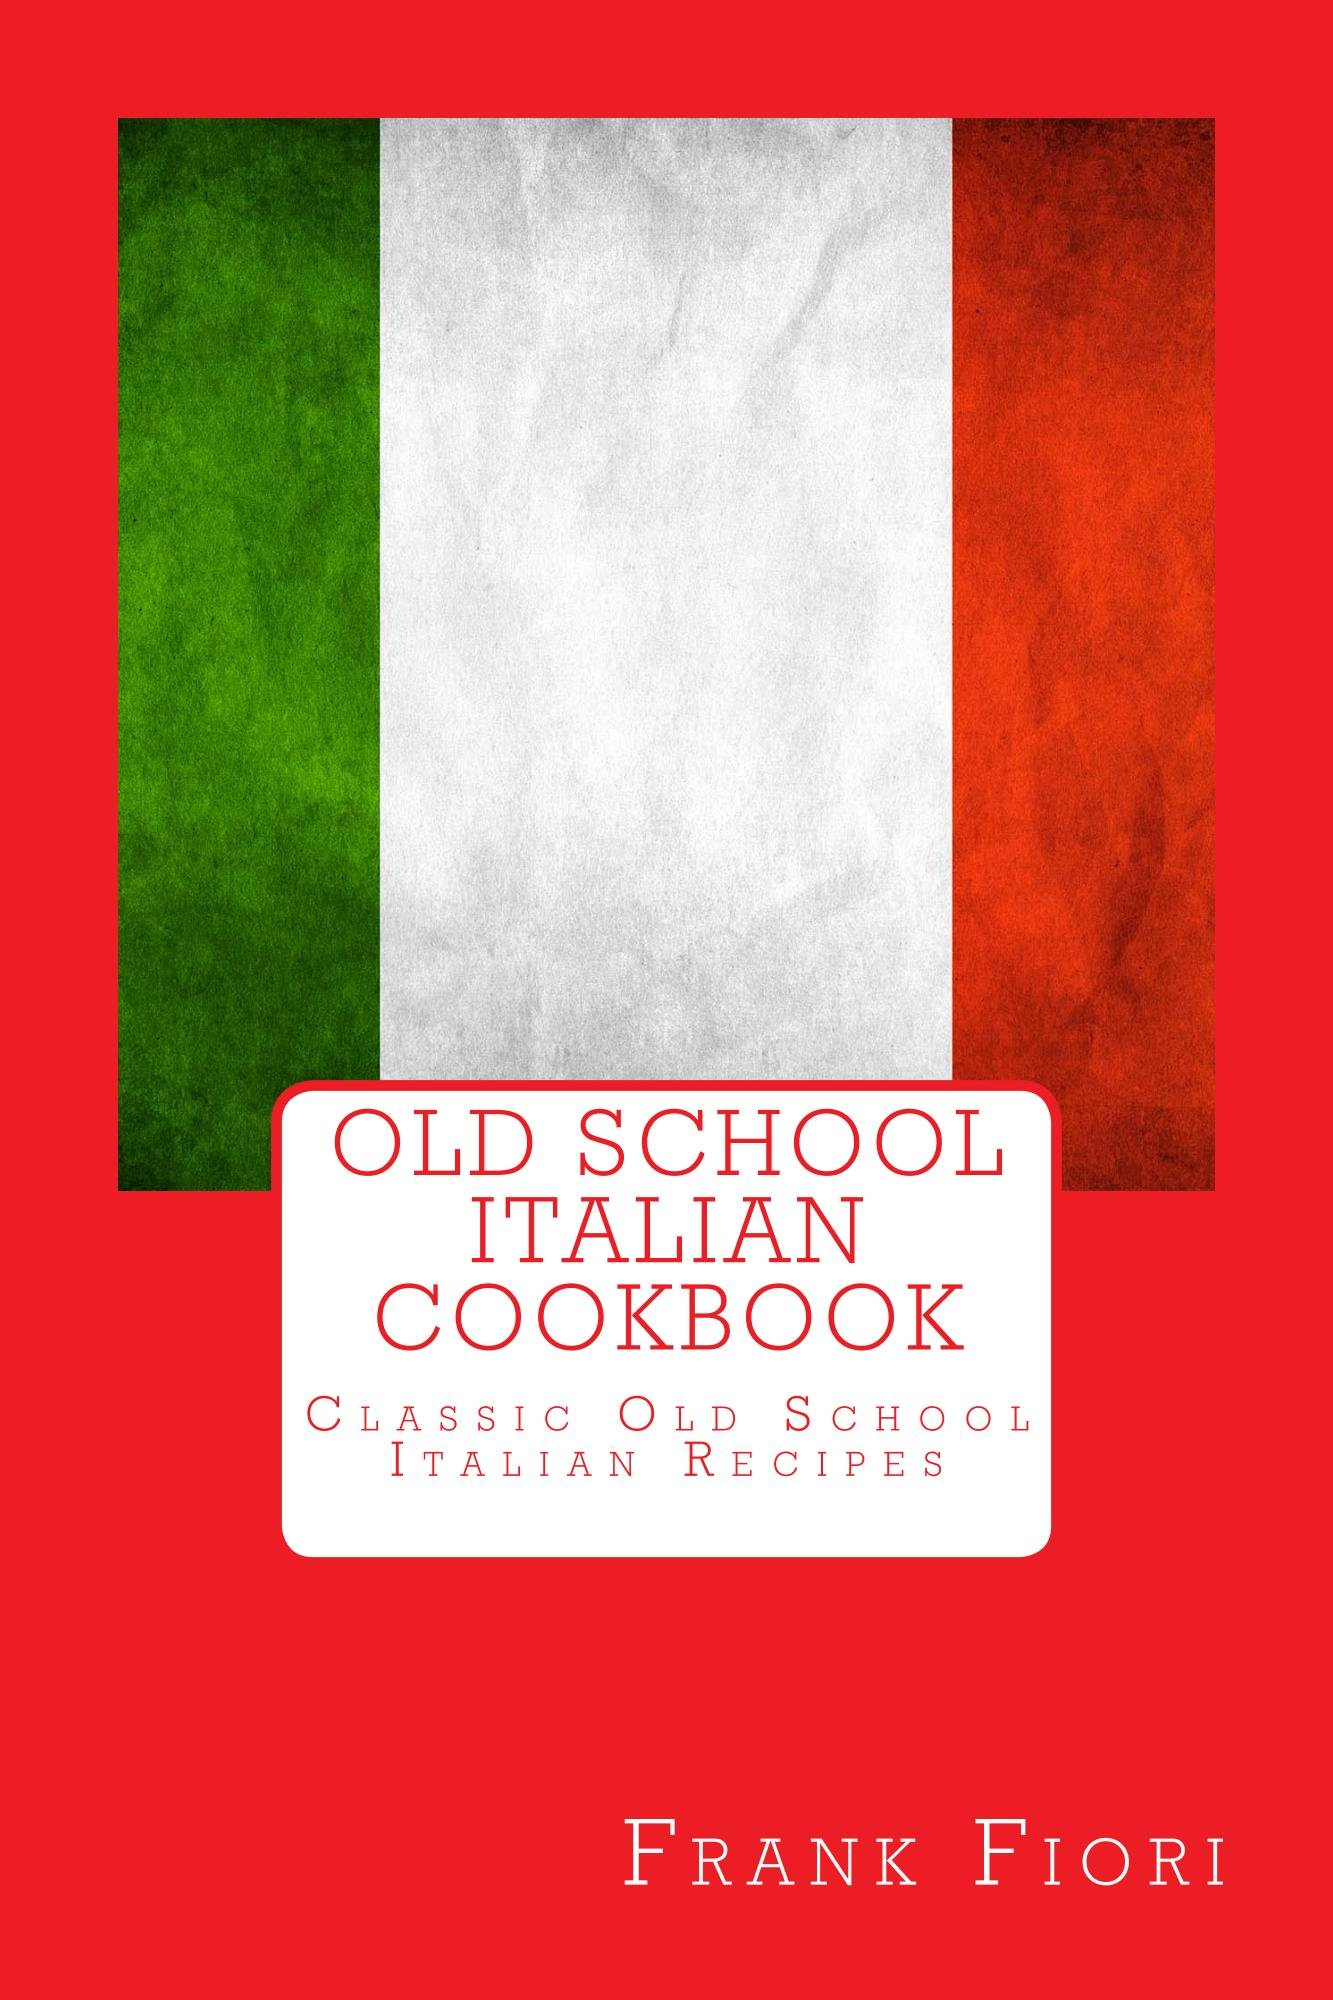 Image OfOld School Italian Cookbook